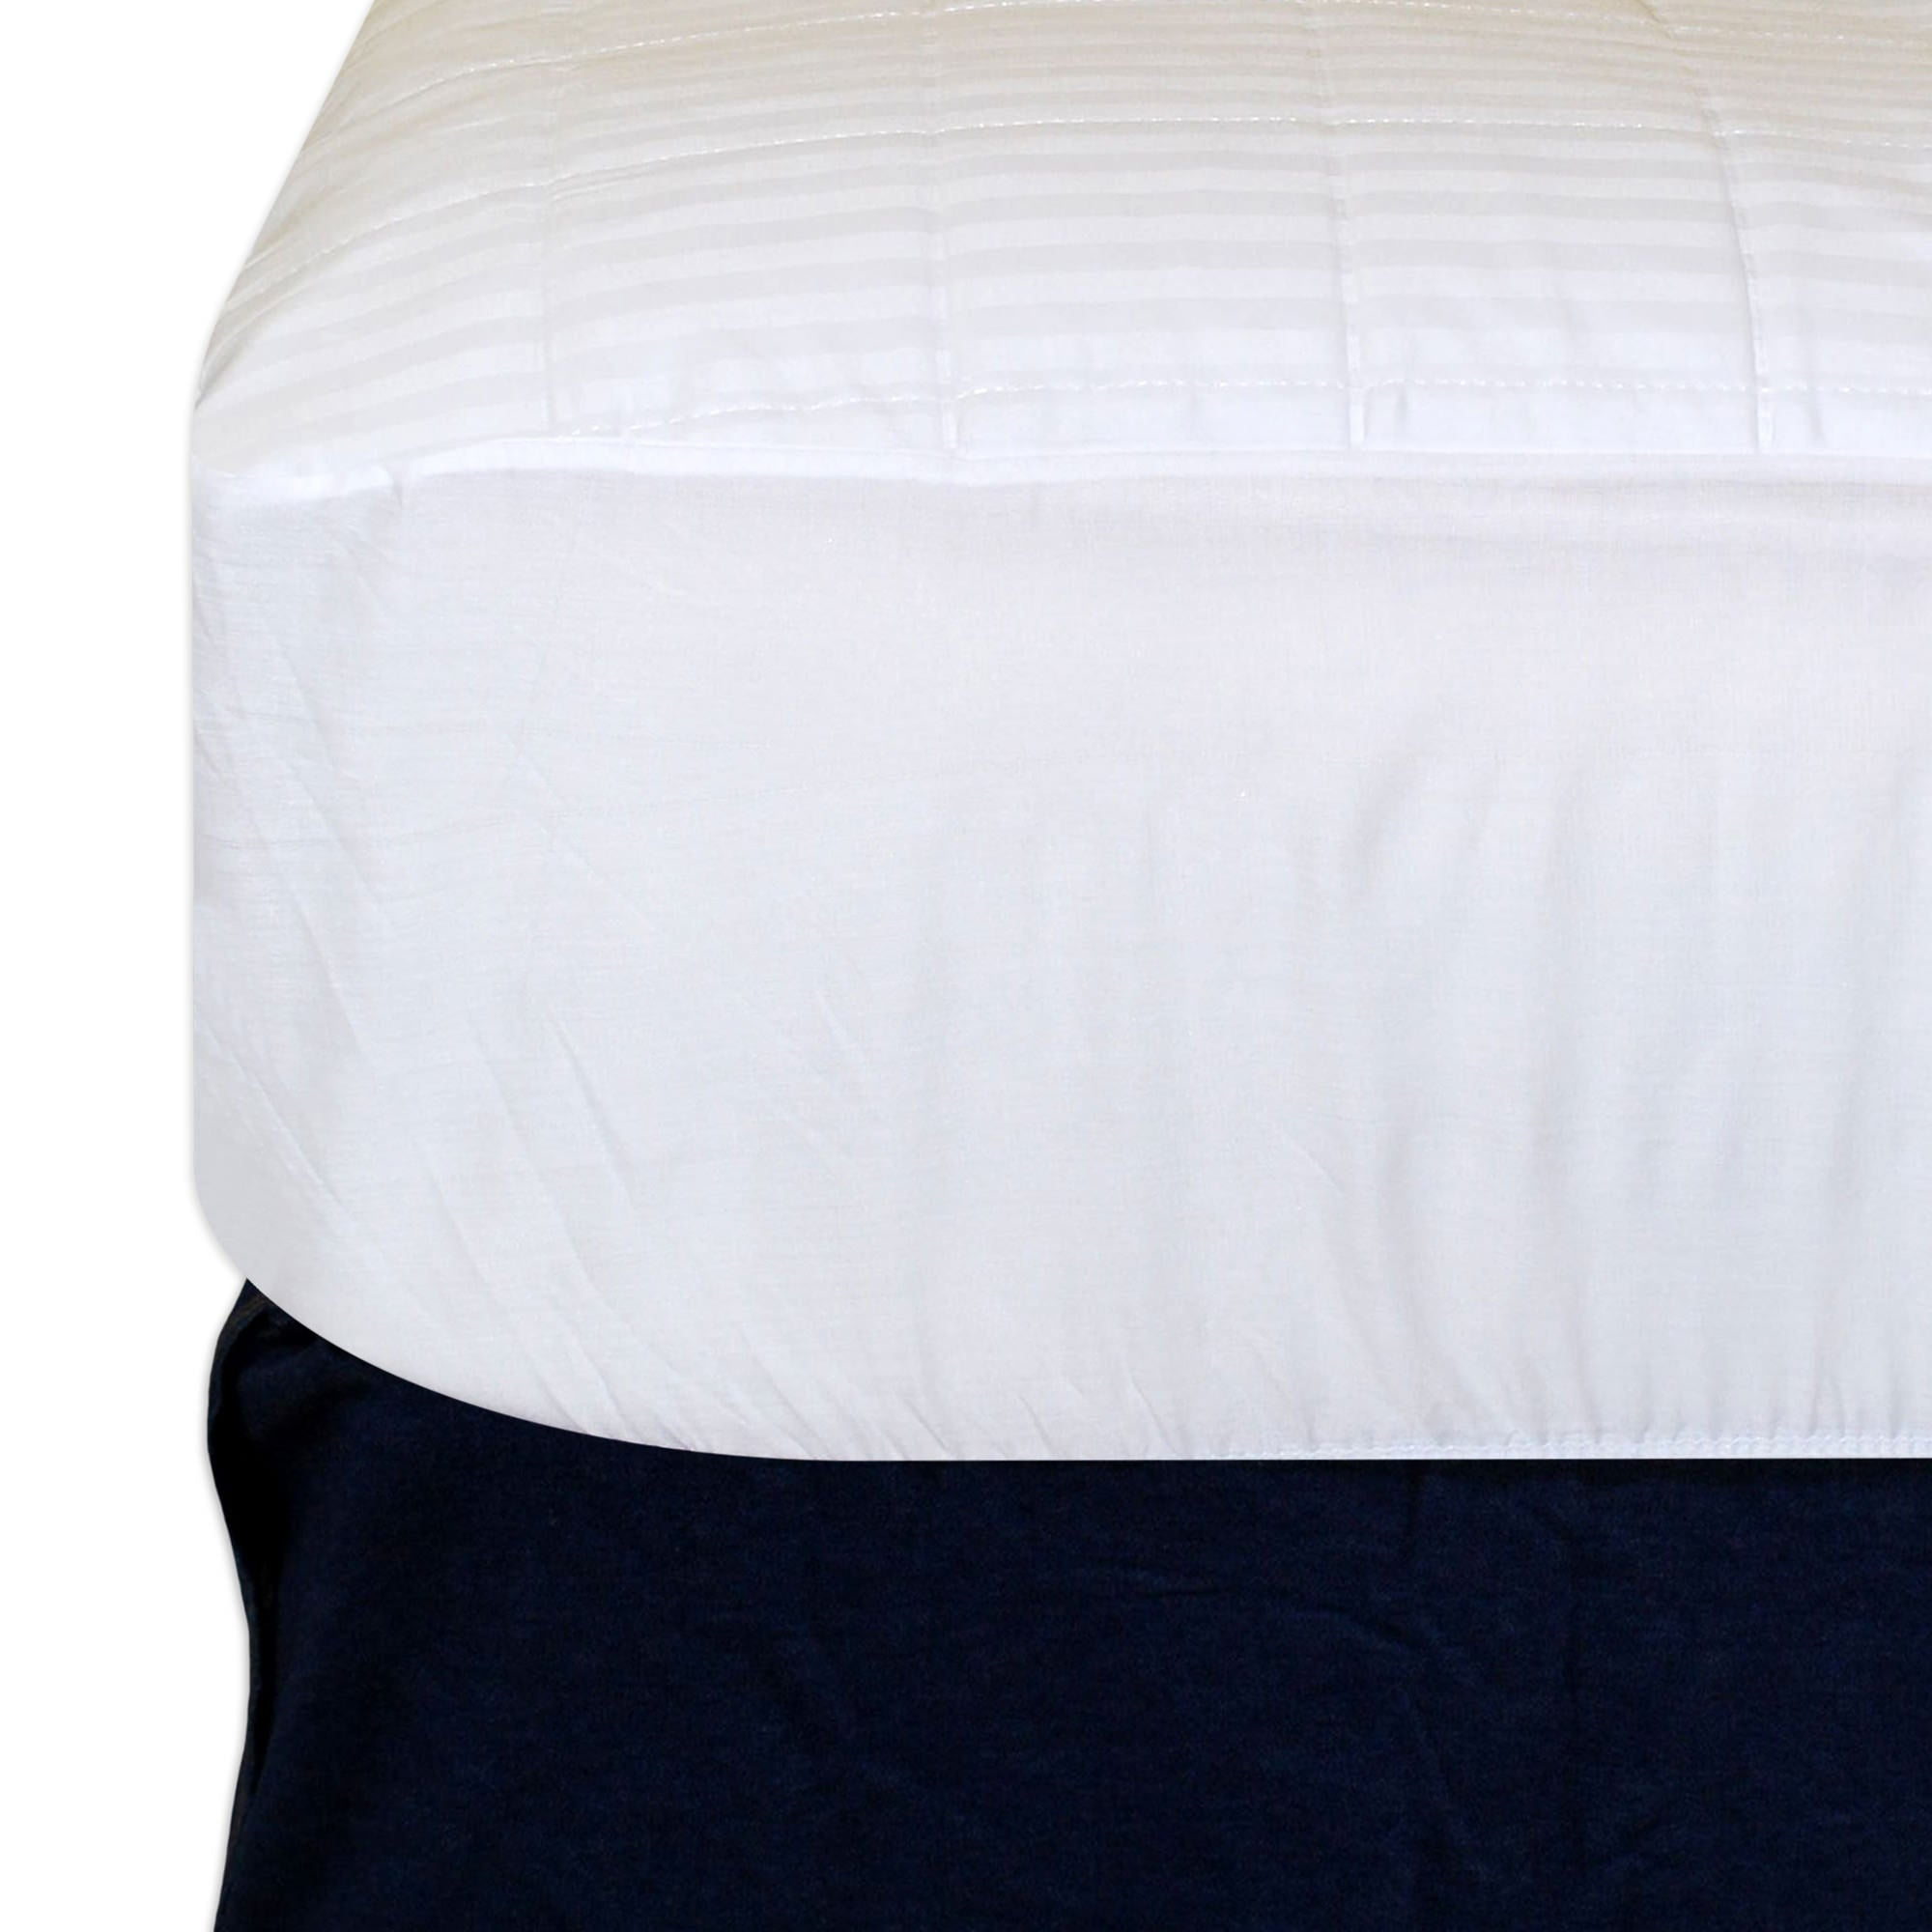 Cotton Top Waterproof Mattress Pad, Waterproof (Fitted)